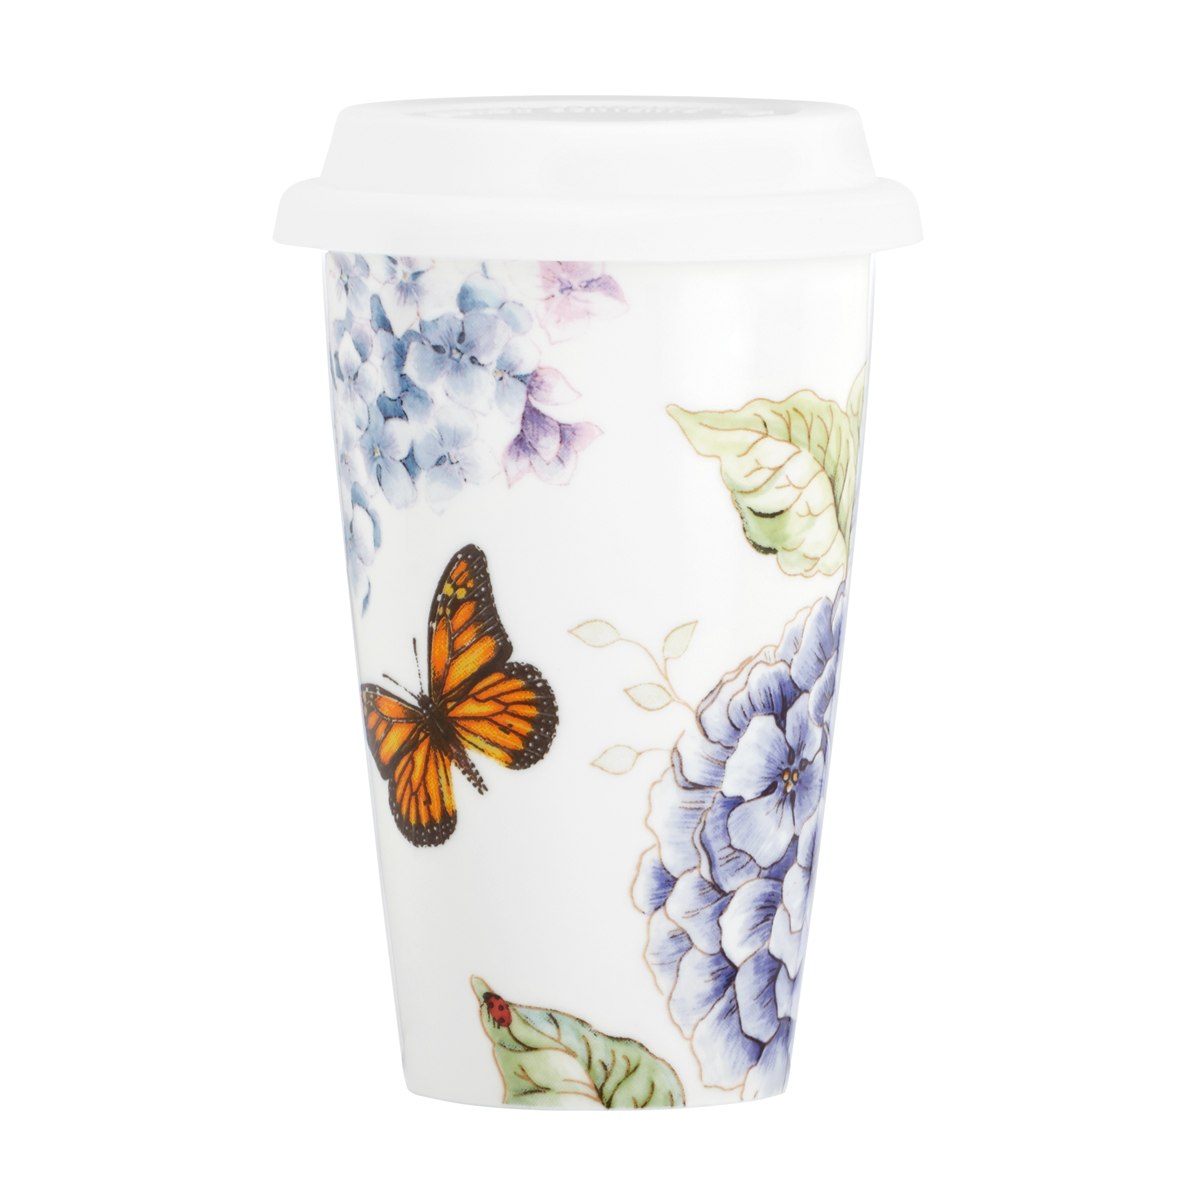 Lenox Butterfly Meadow Blue Dinnerware Thermal Travel Mug